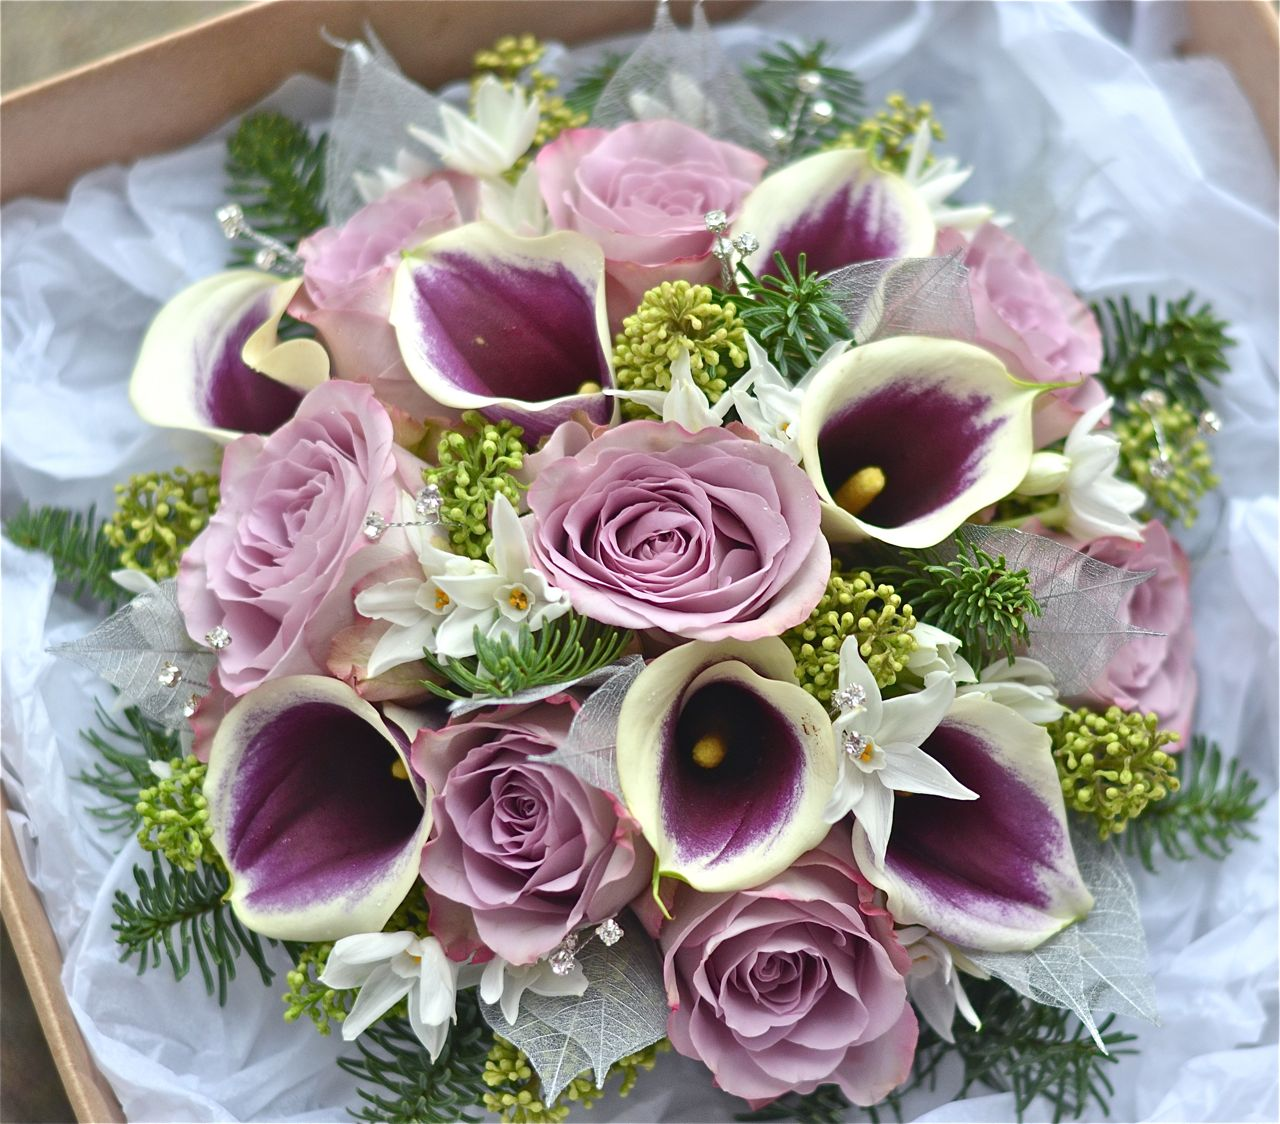 Wedding Flowers Blog: Lacey\'s Plum and Silver Winter Wedding ...